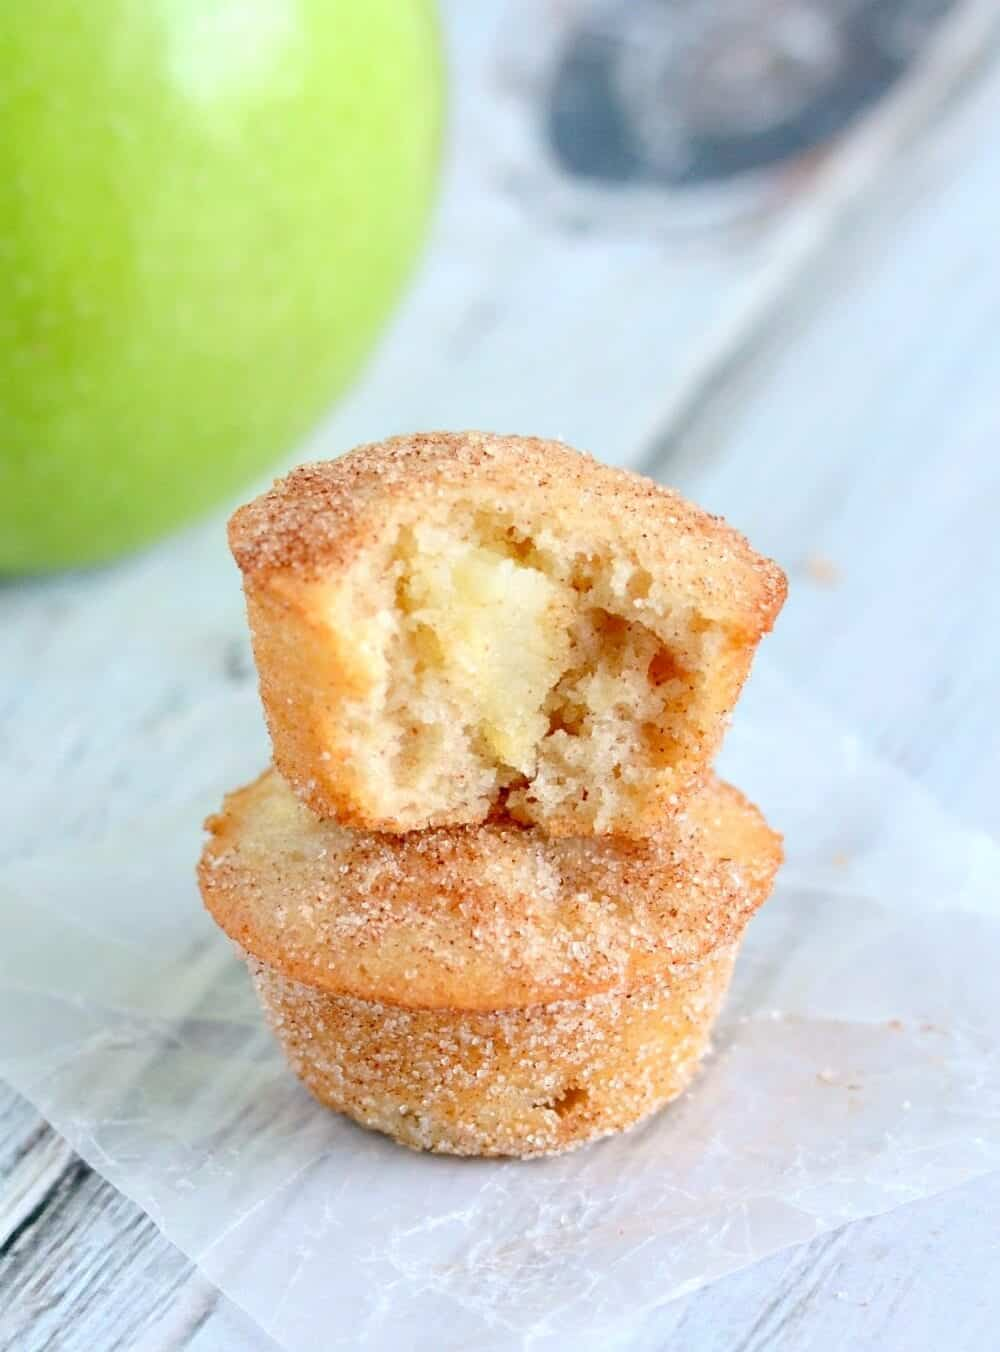 Easy and delicious, these Apple Snickerdoodle Mini Muffins are sure to become a favorite!